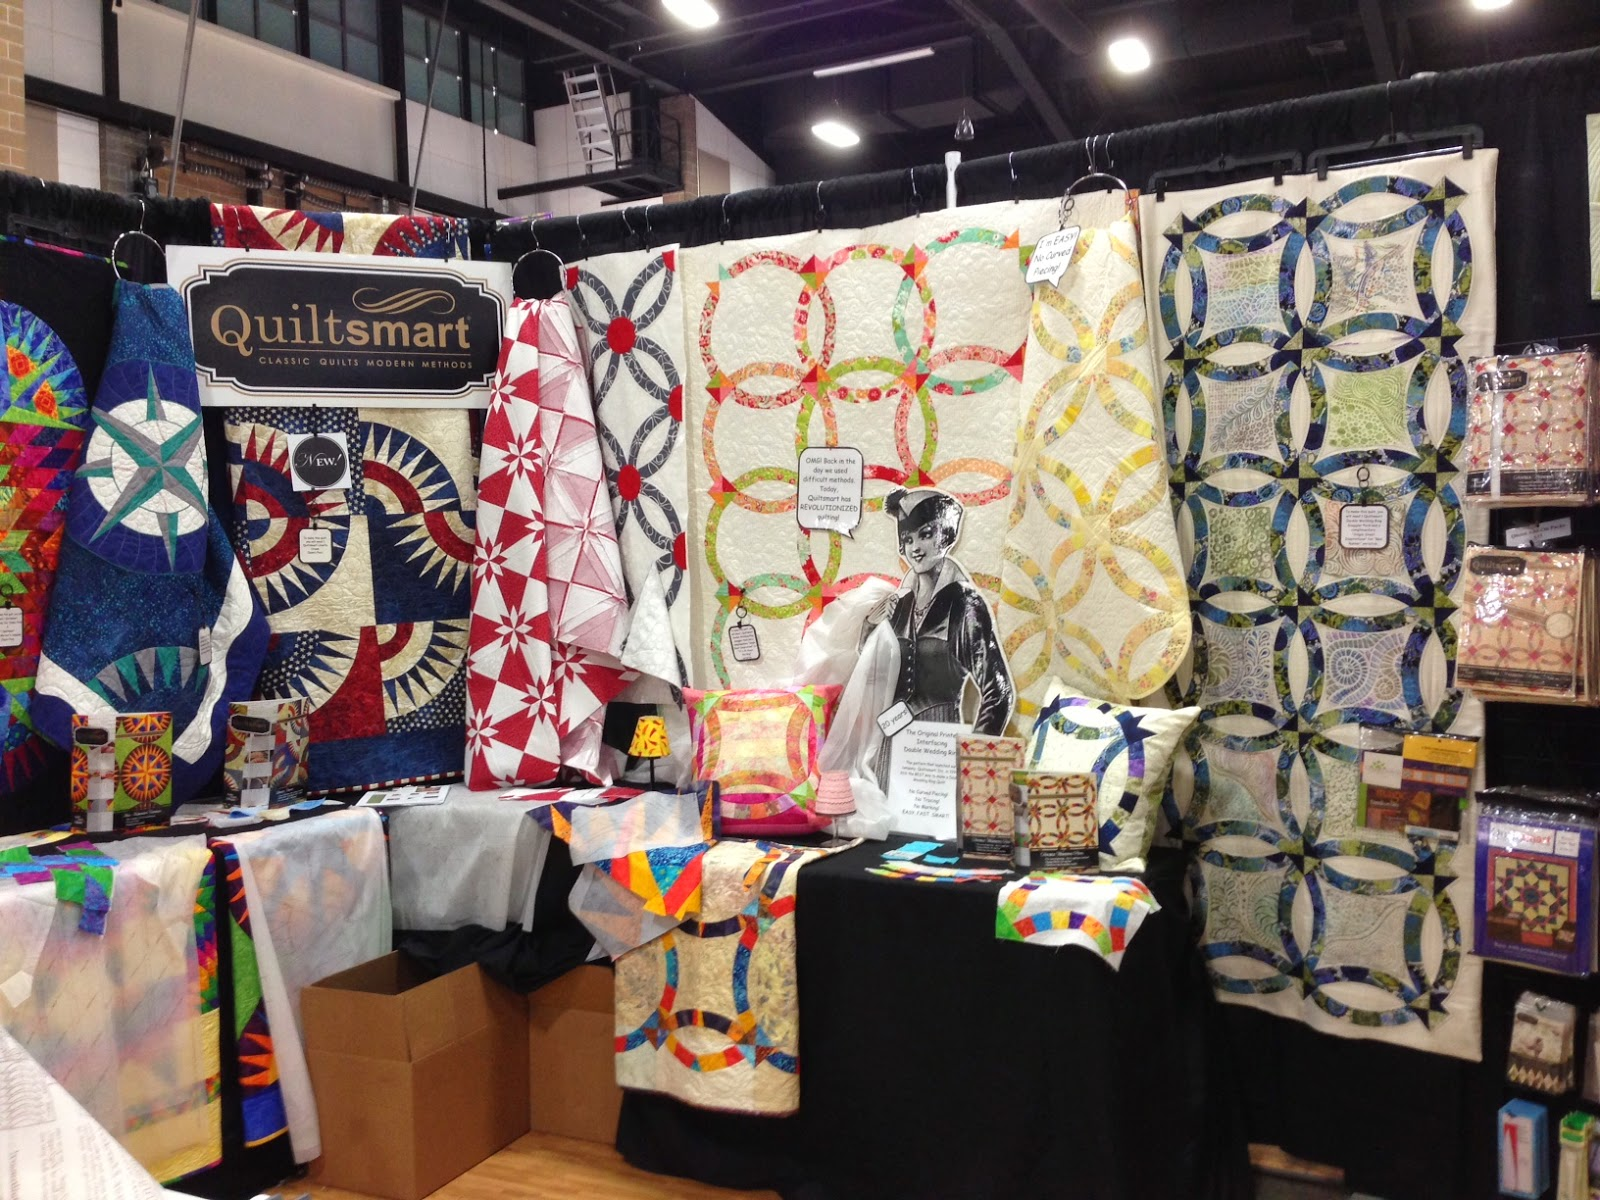 Quiltsmart Trade Show Booth